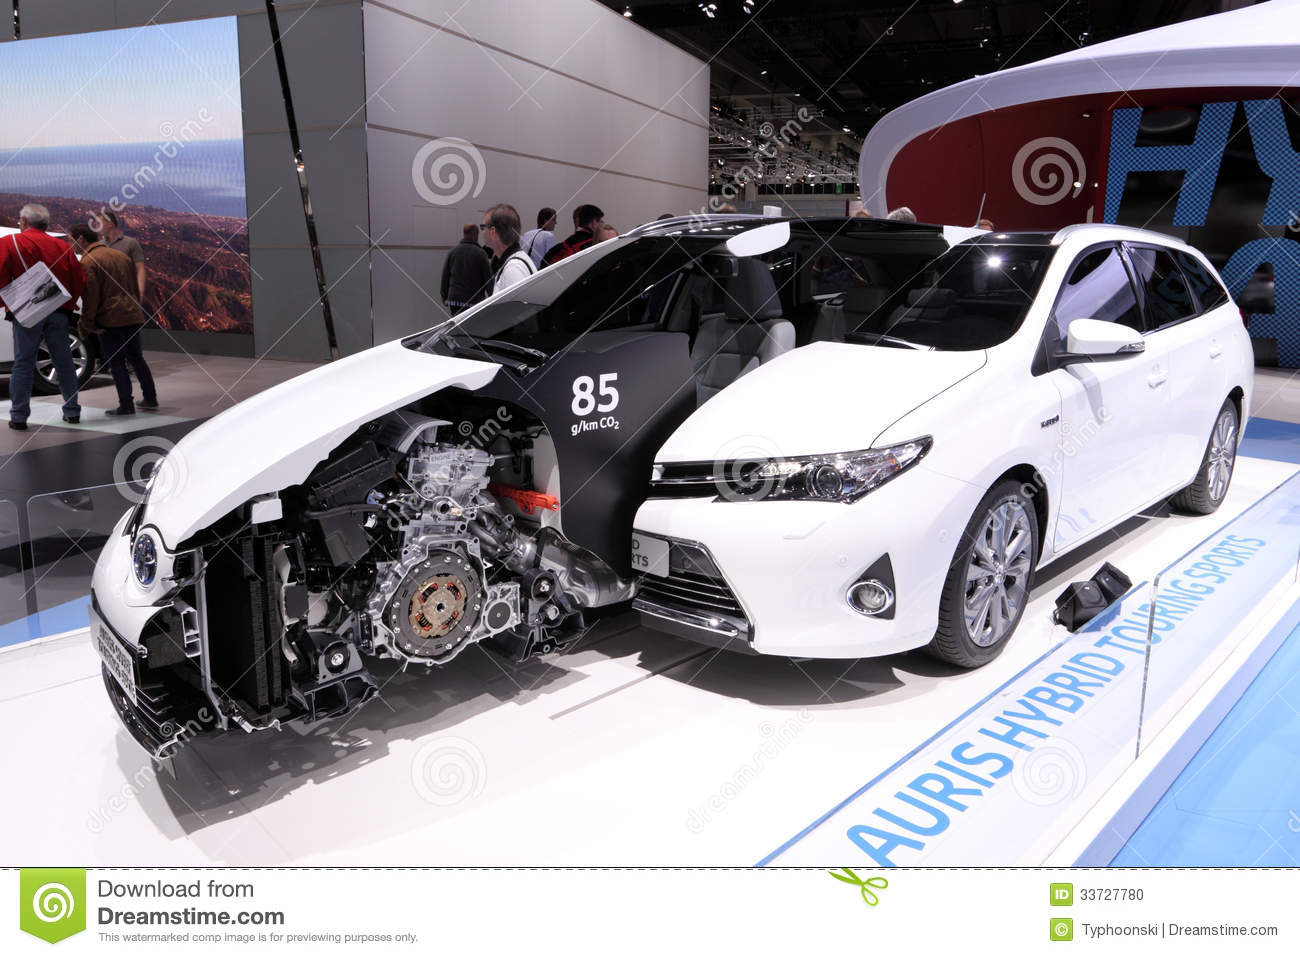 Hybride de toyota auris voyageant des sports image for 3rd international salon of photography smederevo 2013